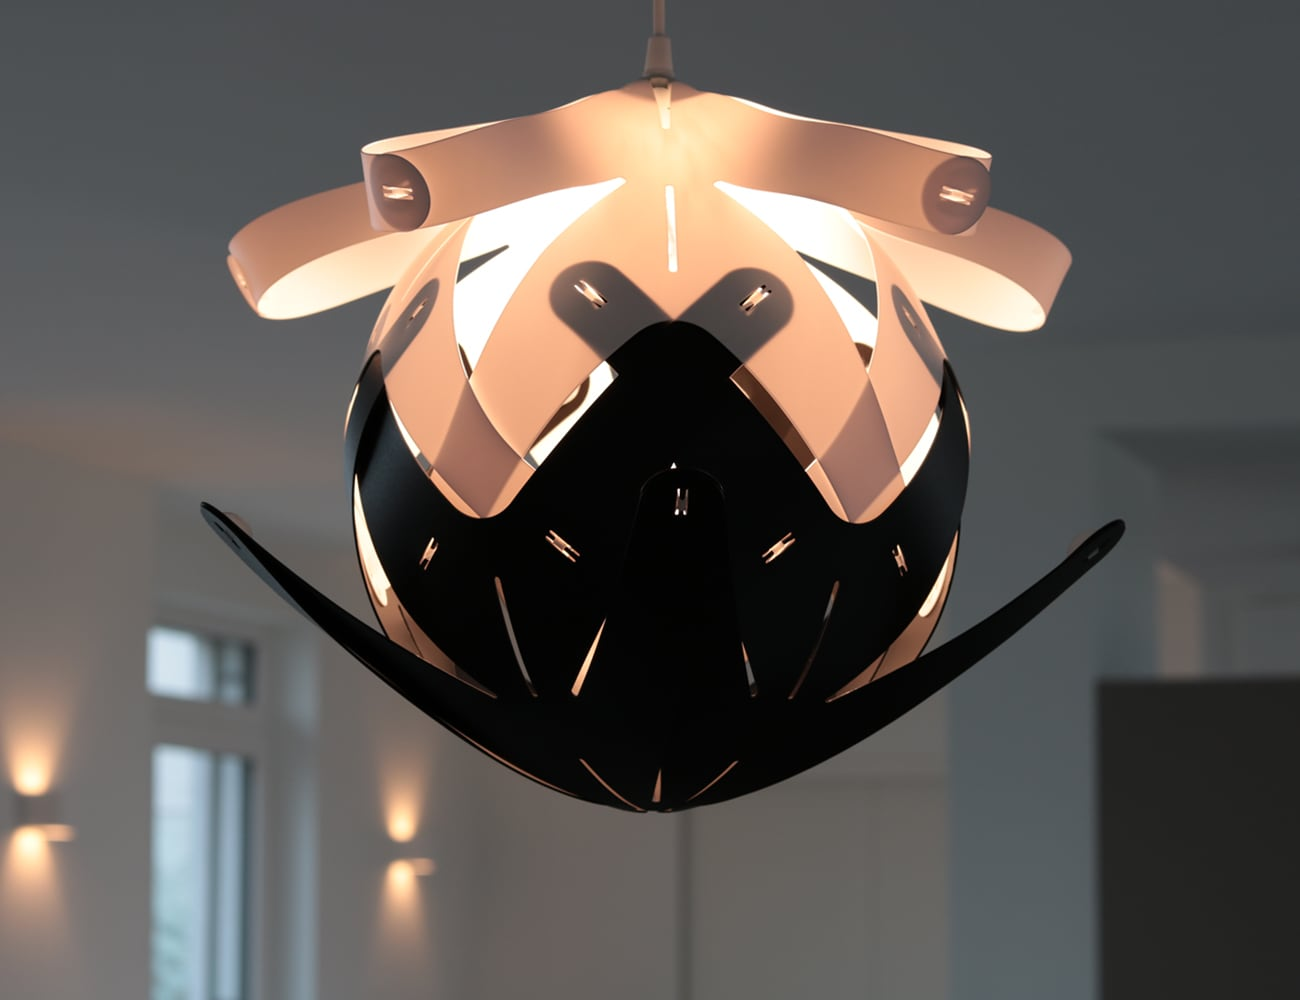 The beautiful Button Loop lampshade can change shape in a minute